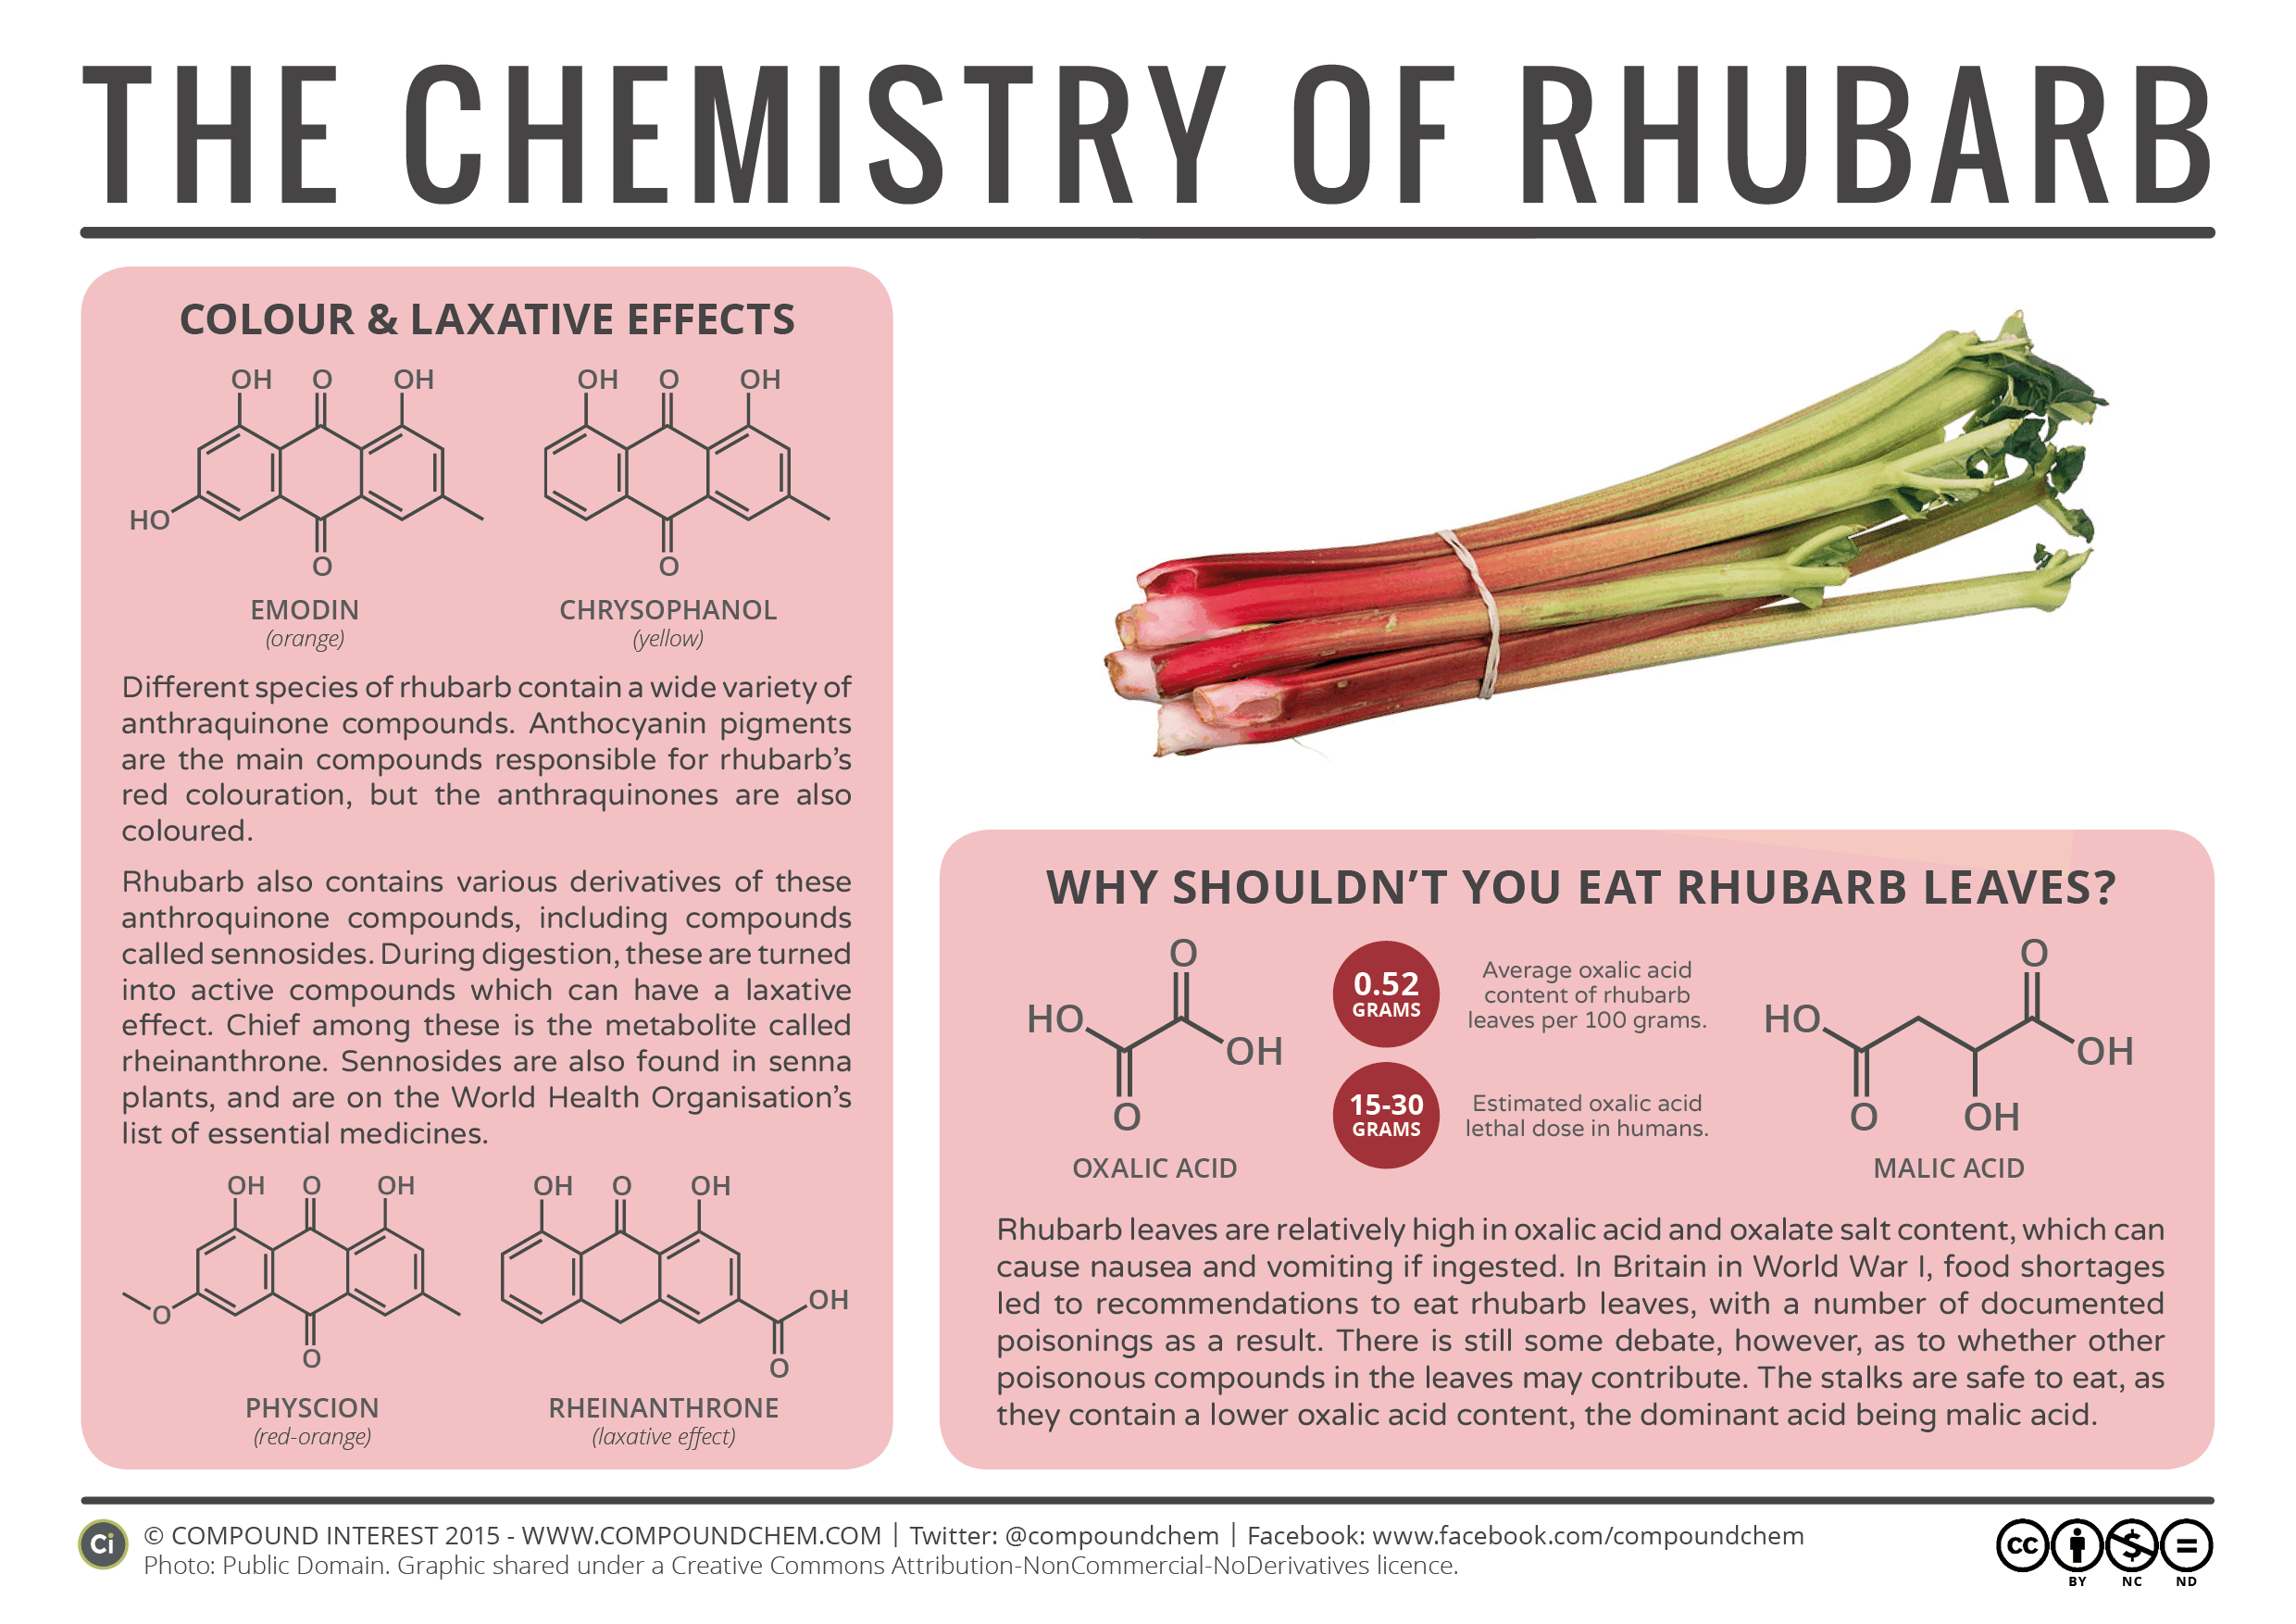 Why Shouldnt You Eat Rhubarb Leaves The Chemistry Of Rhubarb